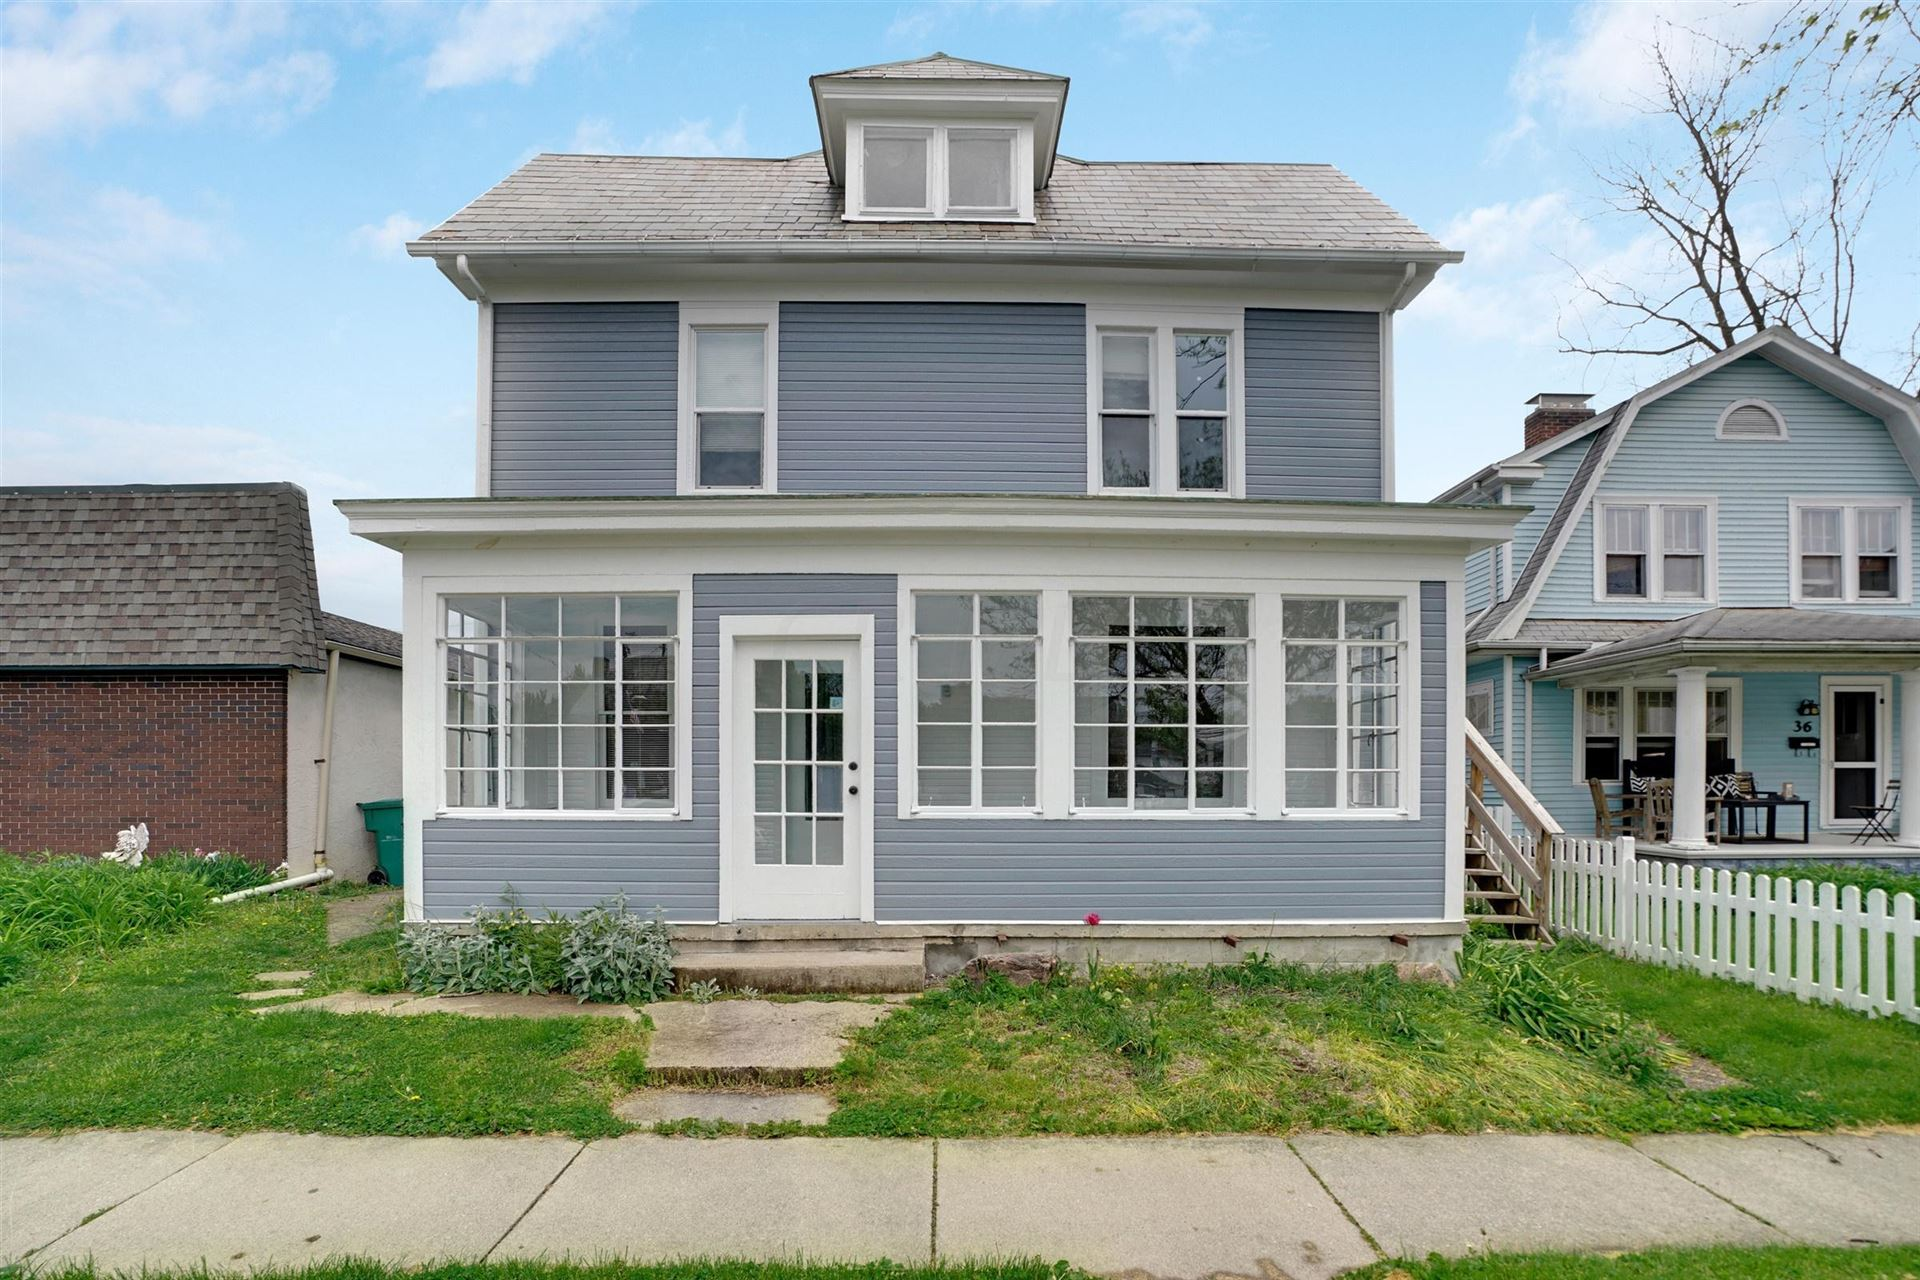 32 E Waterloo Street, Canal Winchester, OH 43110 - MLS#: 220015826